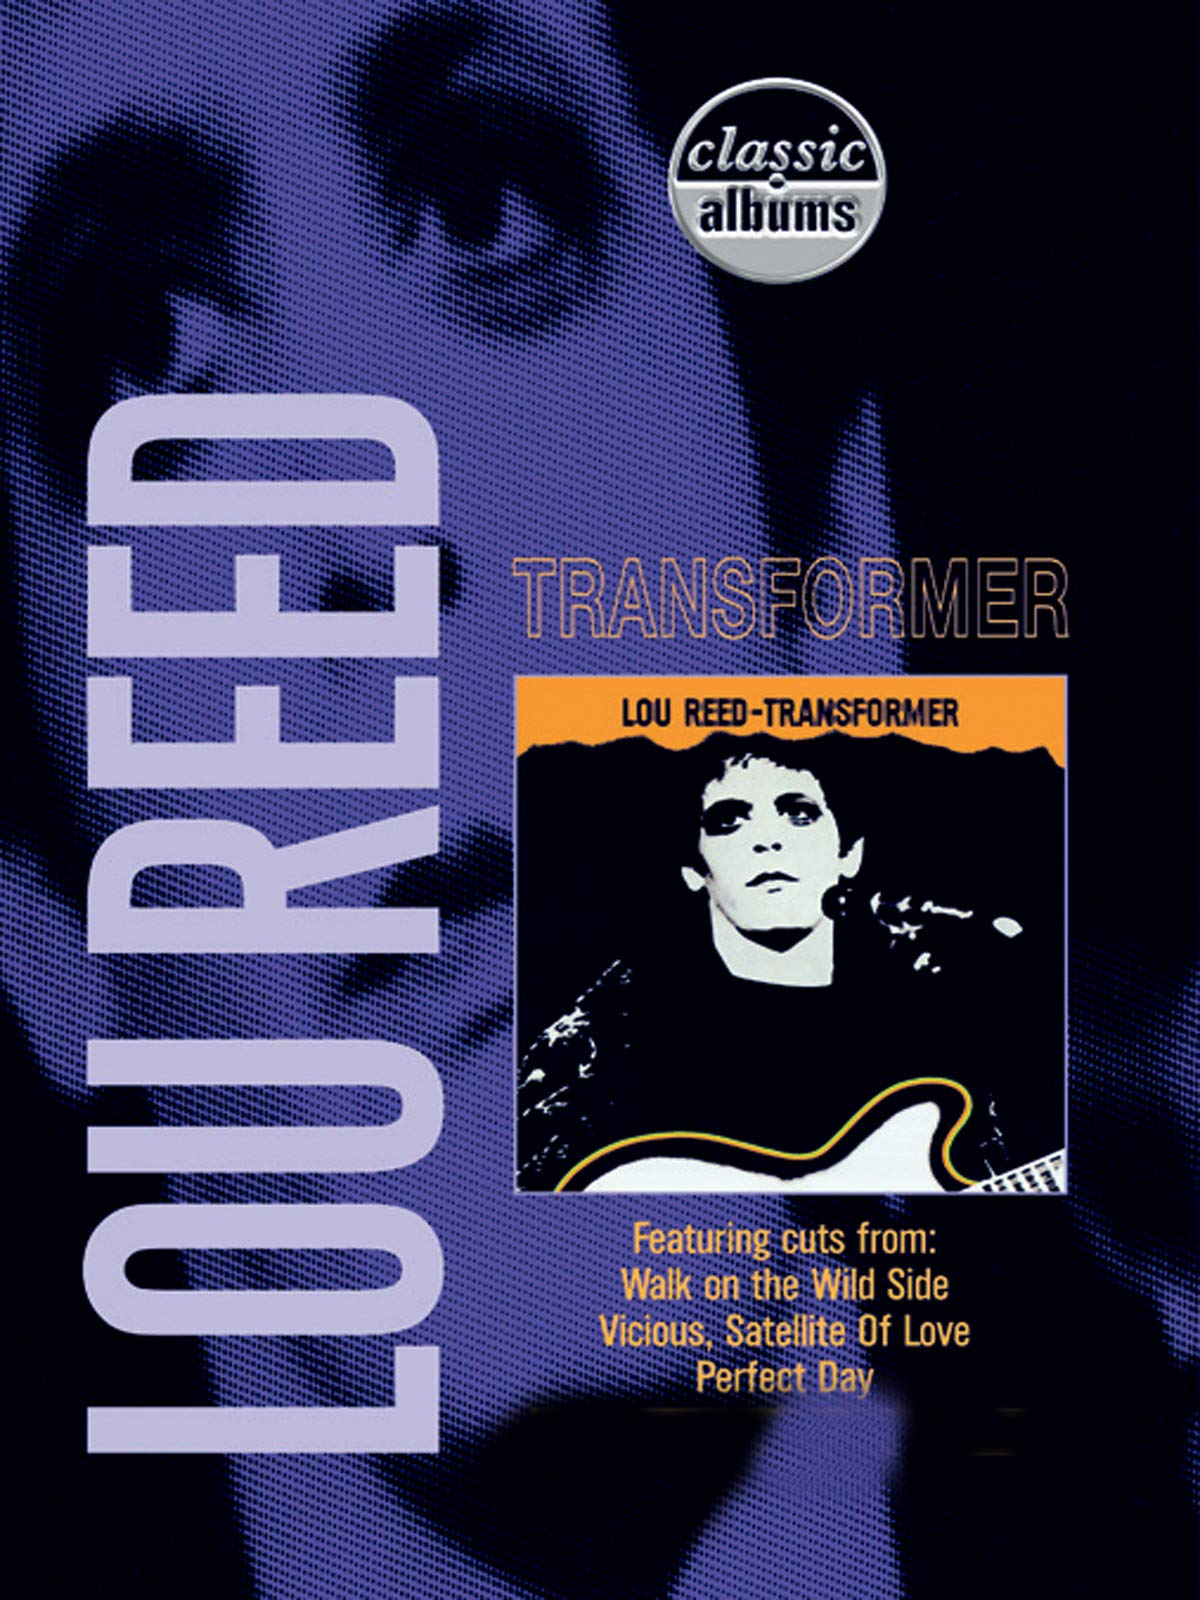 Lou Reed - Transformer (Classic Album) on Amazon Prime Video UK